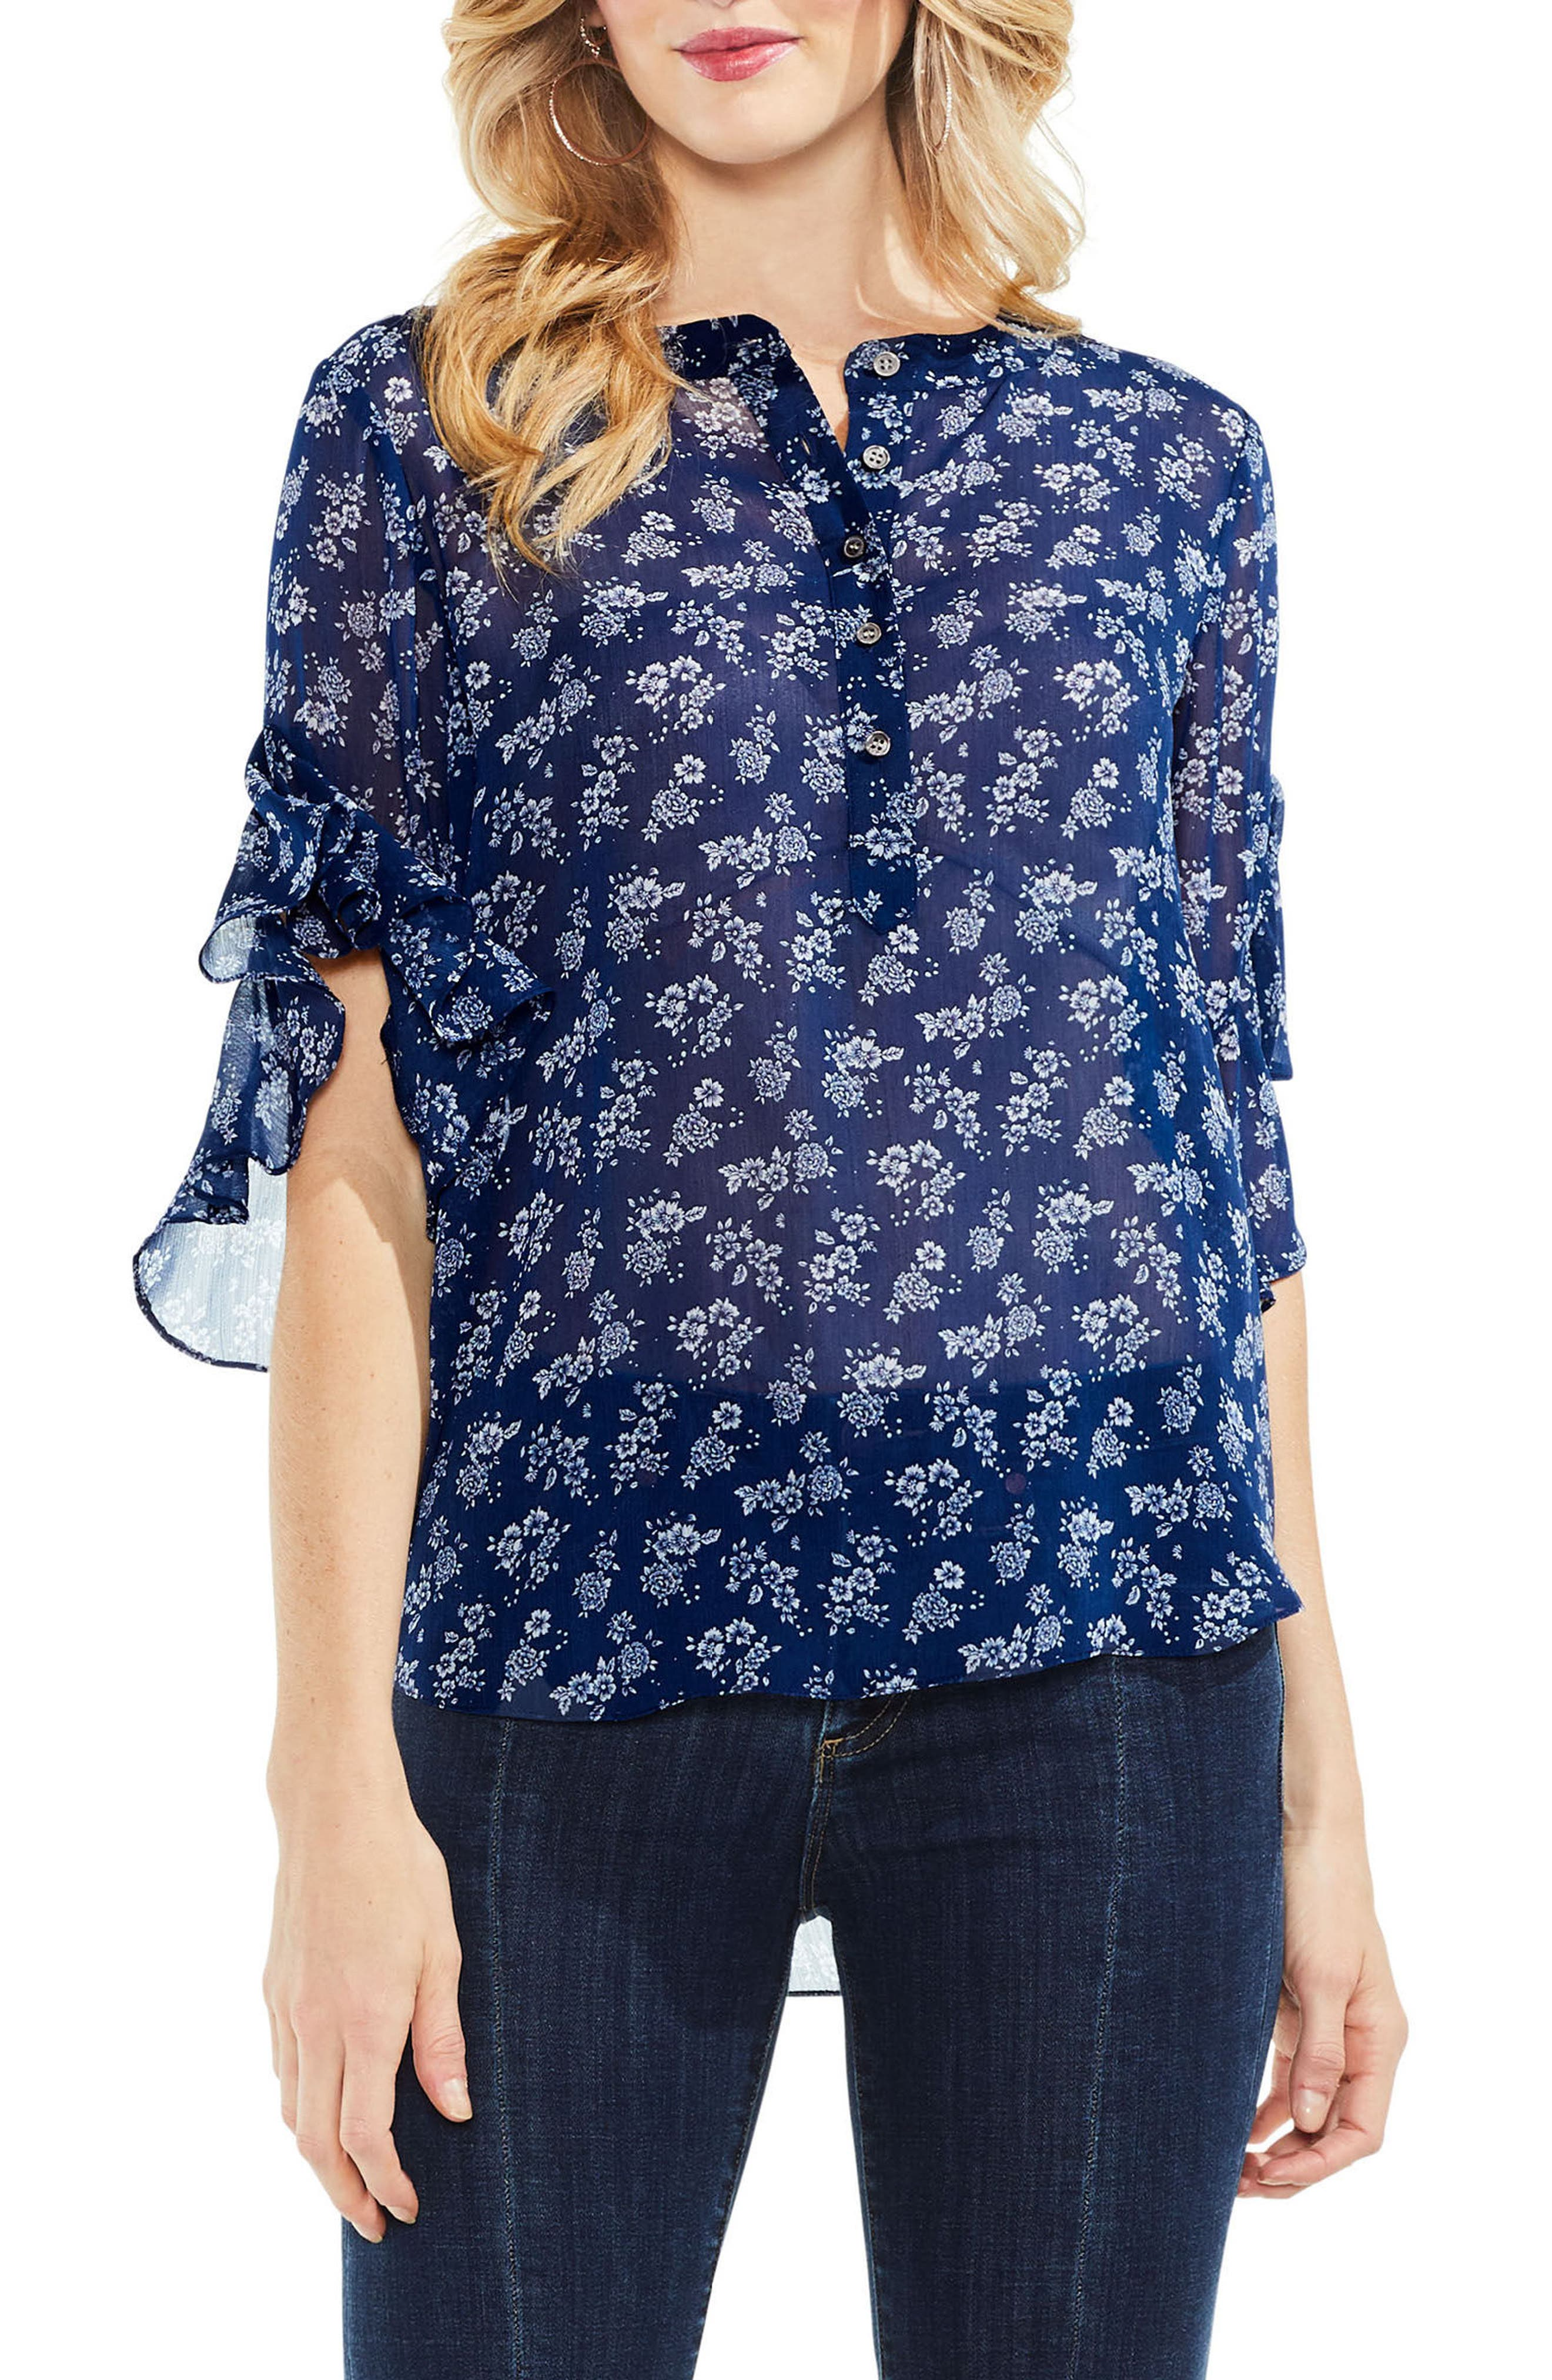 Ruffle Sleeve Floral Top,                             Main thumbnail 1, color,                             491